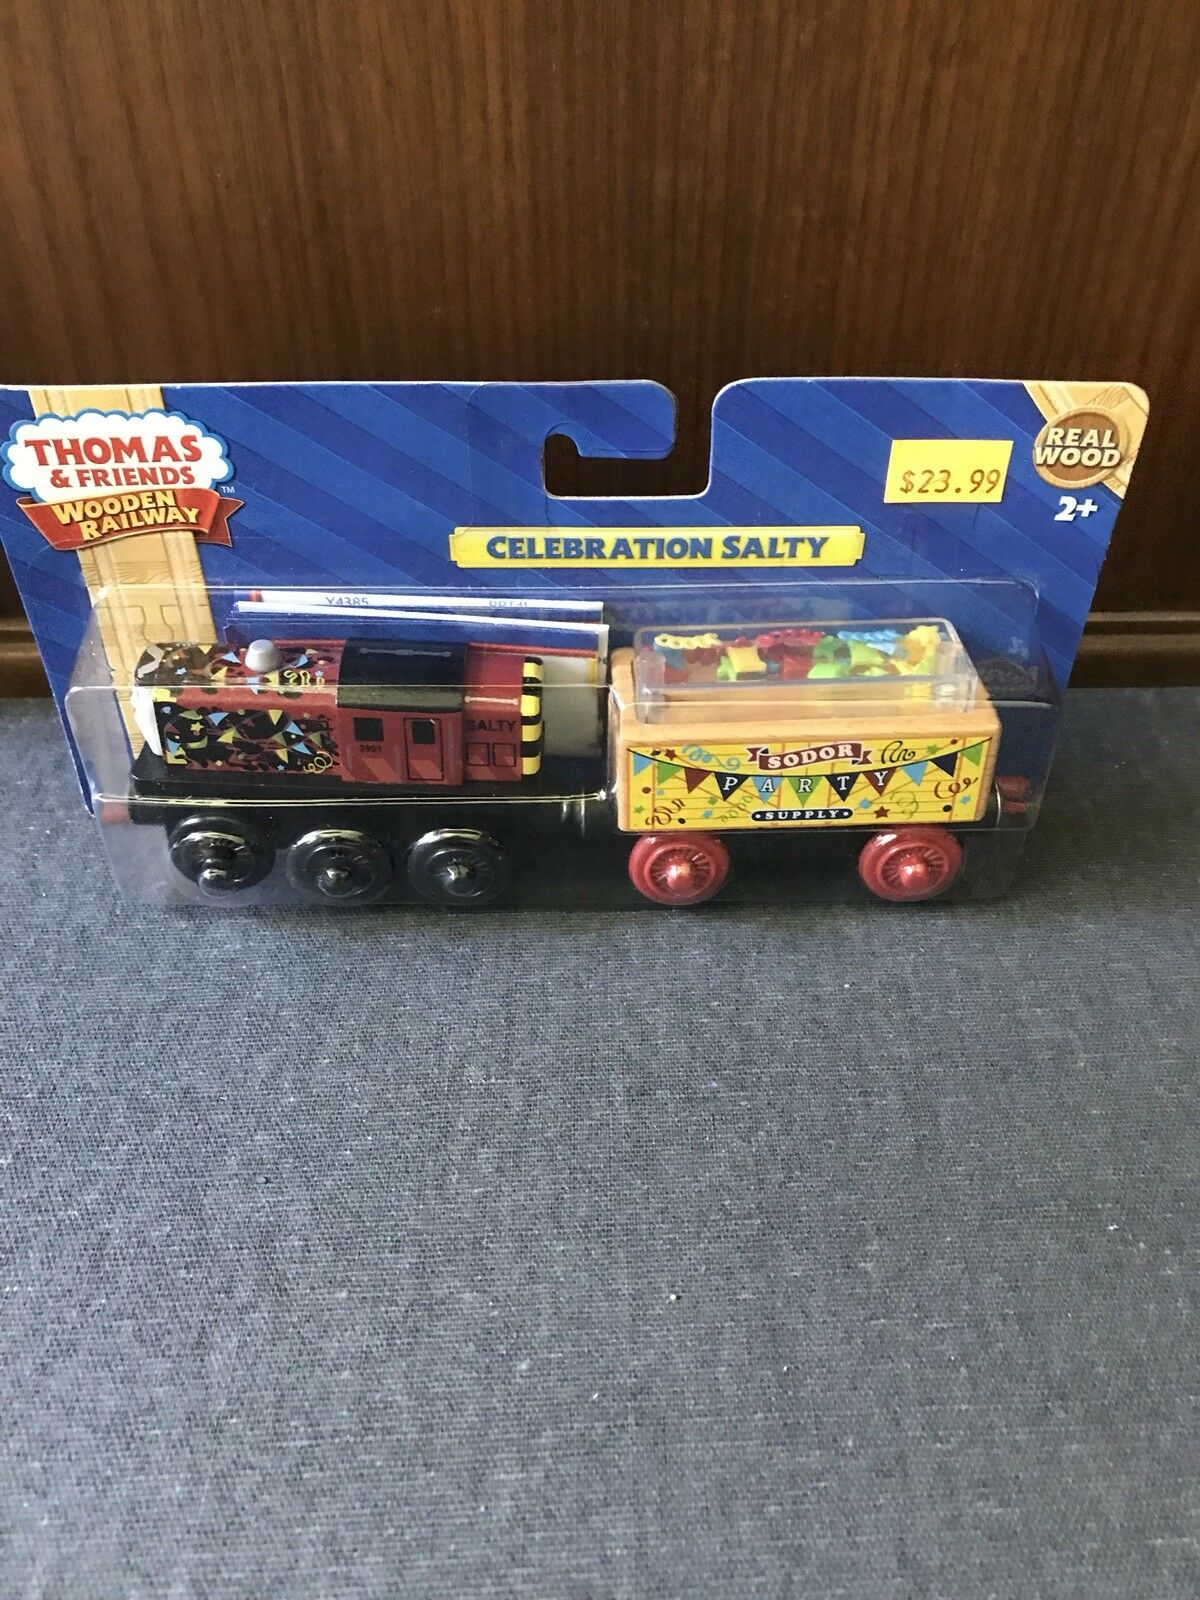 Thomas Wooden Railway Celebration Salty Retired And Rare New In Box